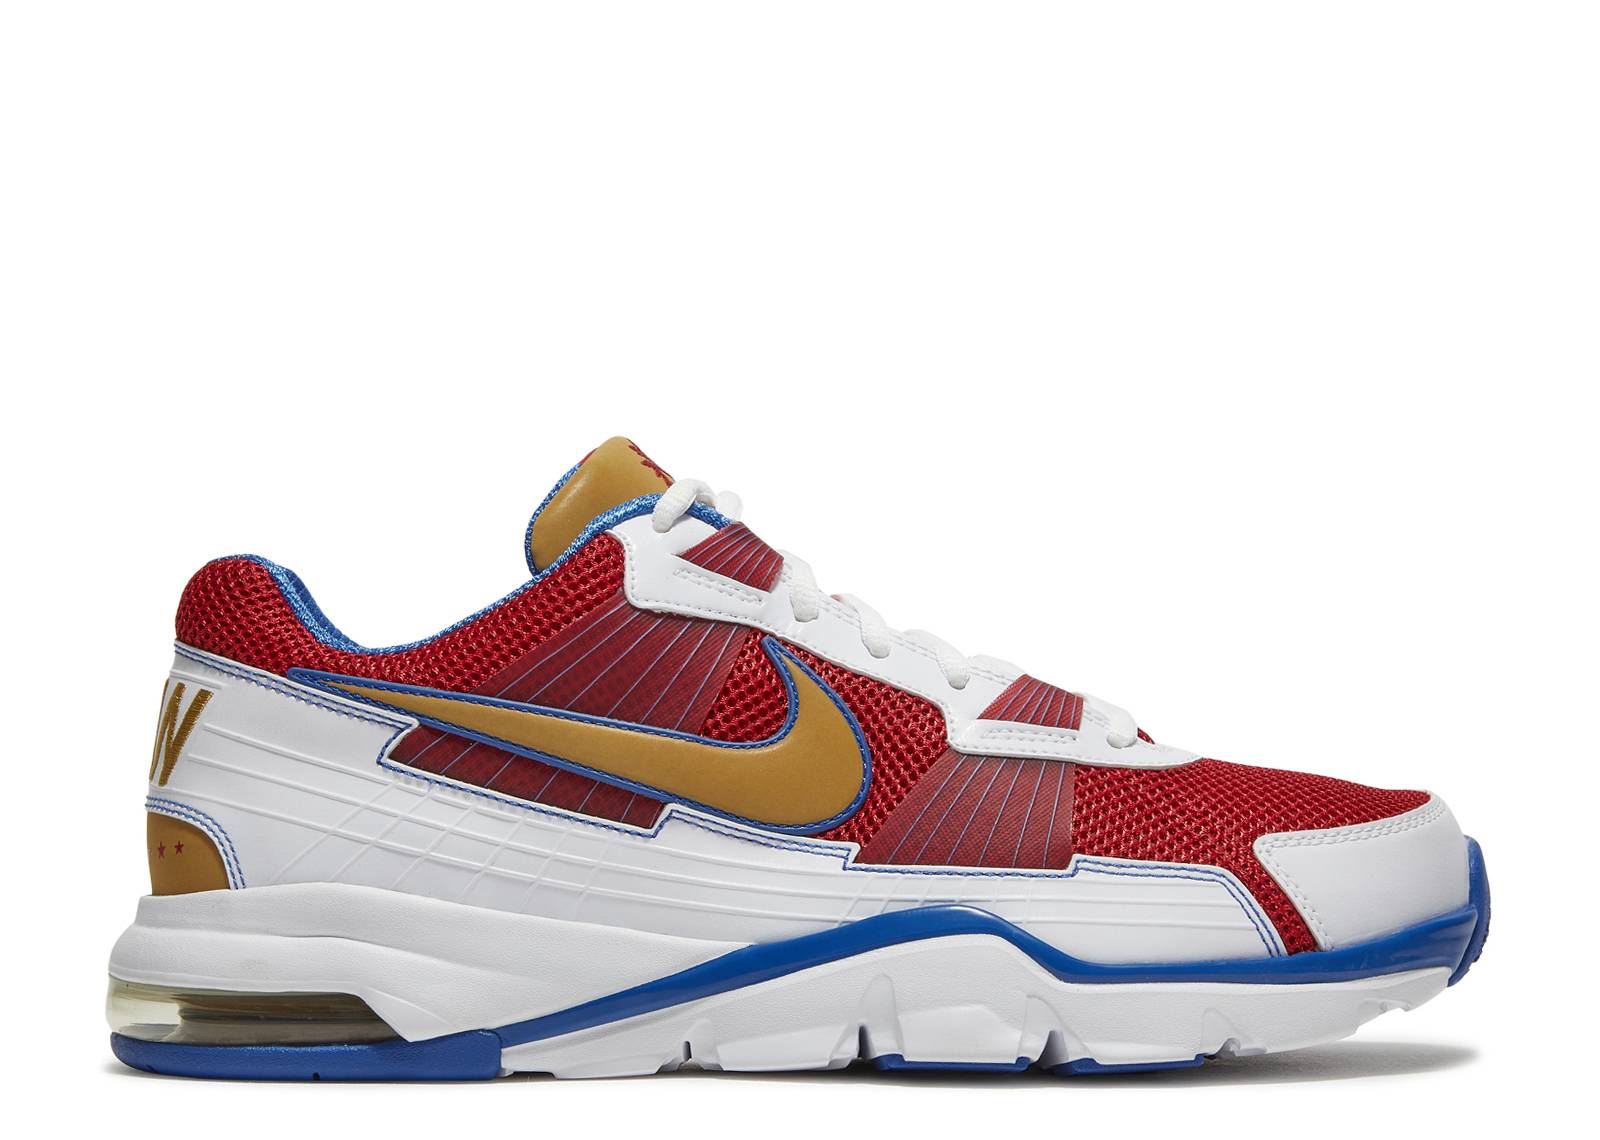 NIKE Training Shoes for 2010: Nike 2010 Trainer SC